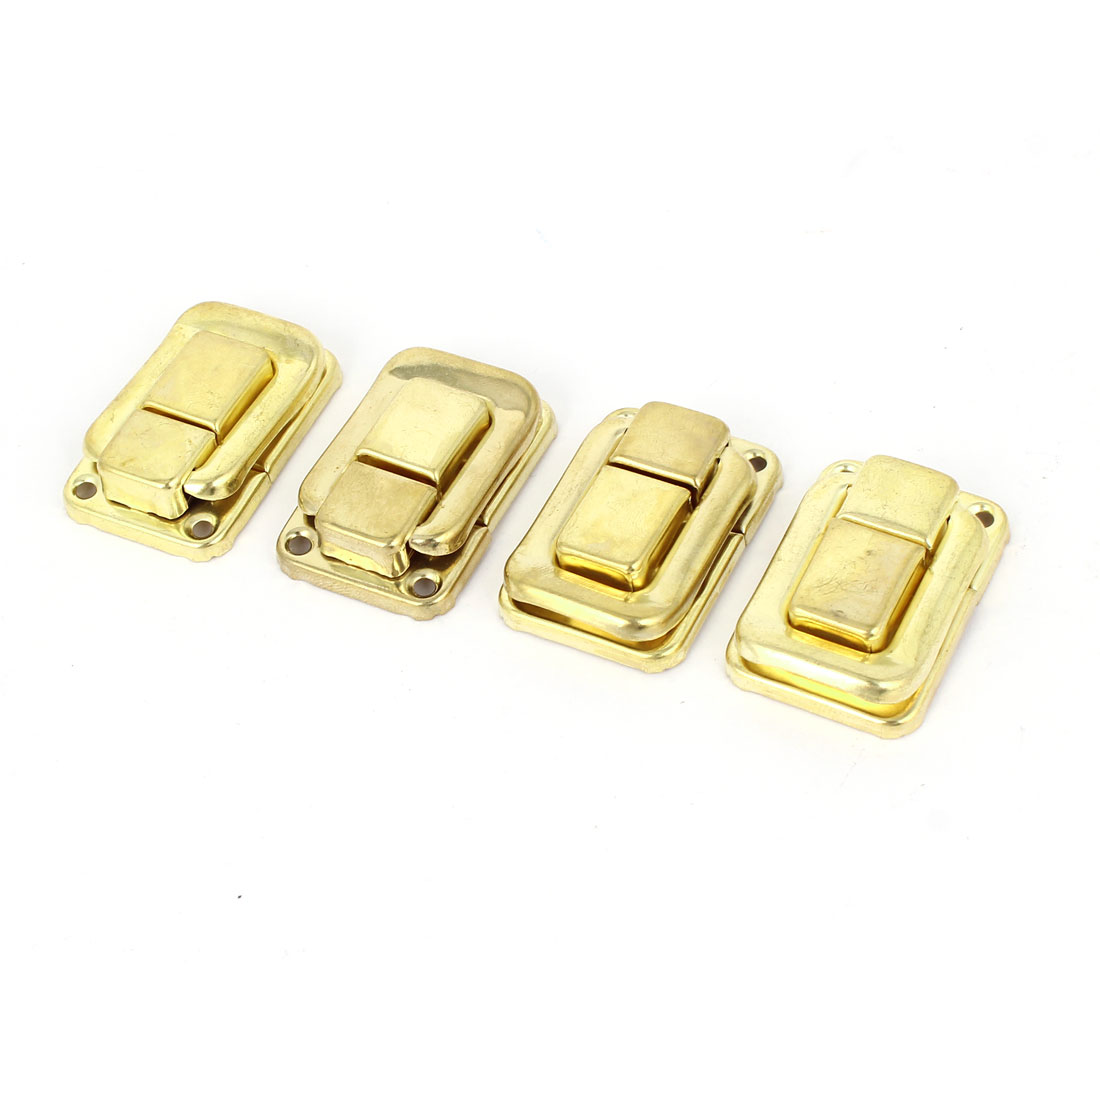 4 Pcs Necklace Box Case Lock Hook Hinge Latch Hasp Sets Gold Tone w Screws